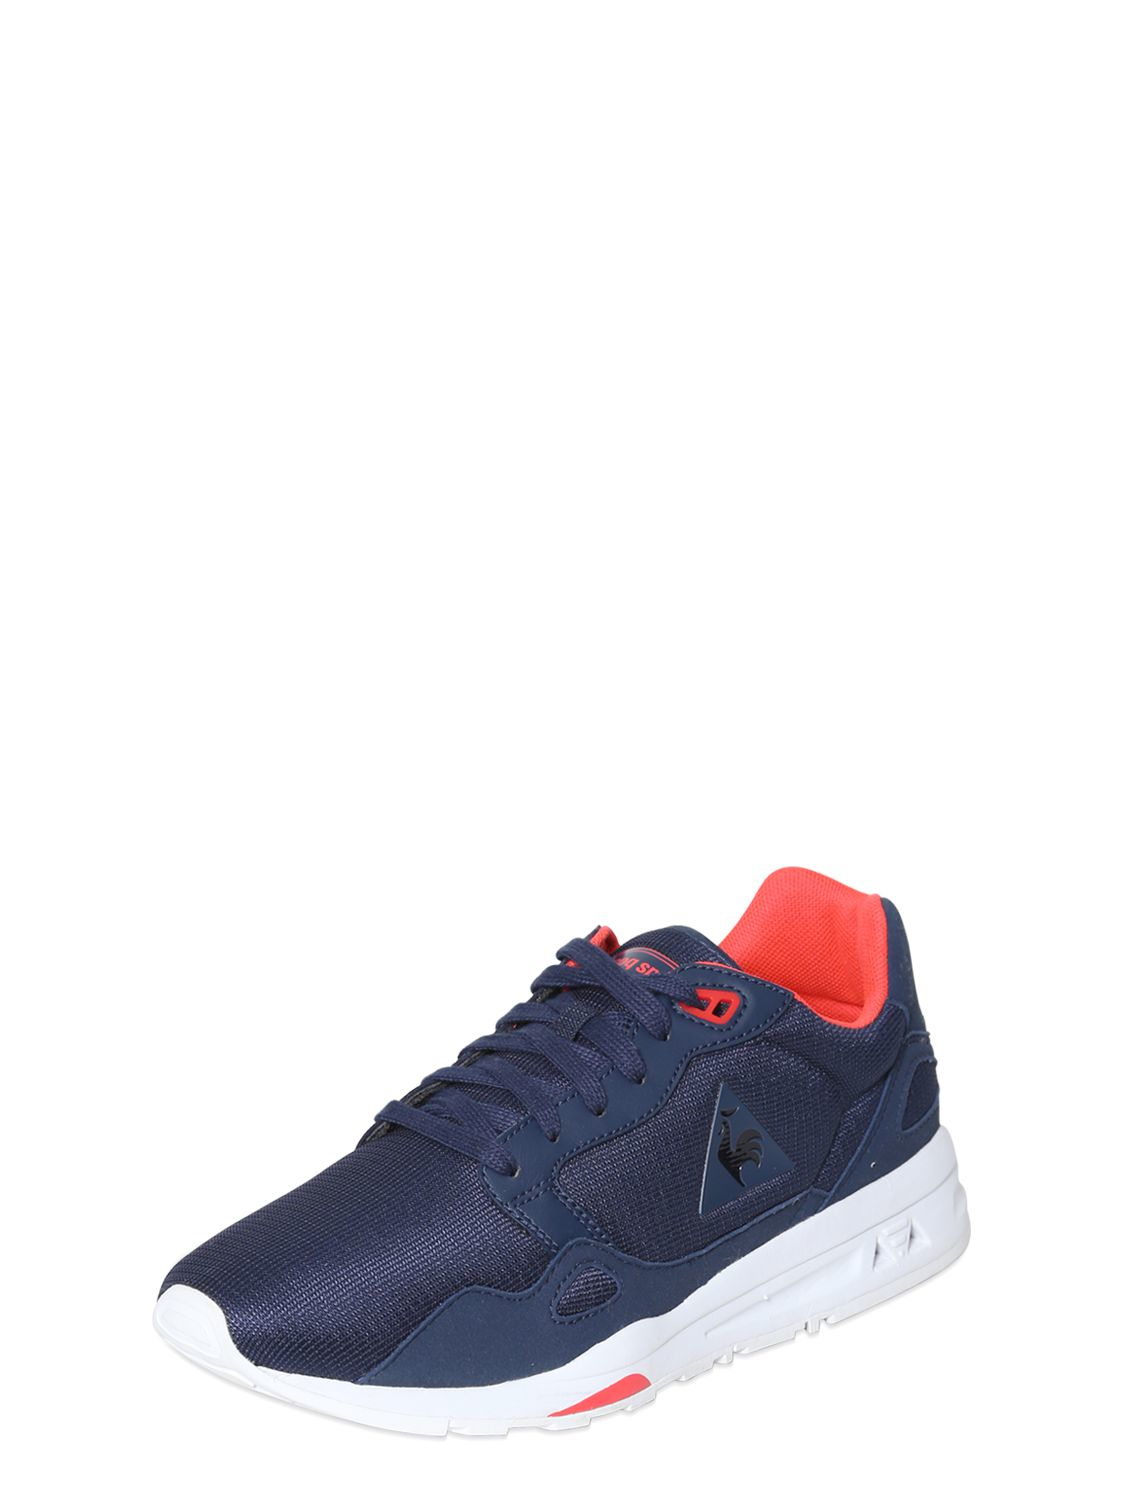 le coq sportif lcs 900 mesh faux leather sneakers in blue lyst. Black Bedroom Furniture Sets. Home Design Ideas